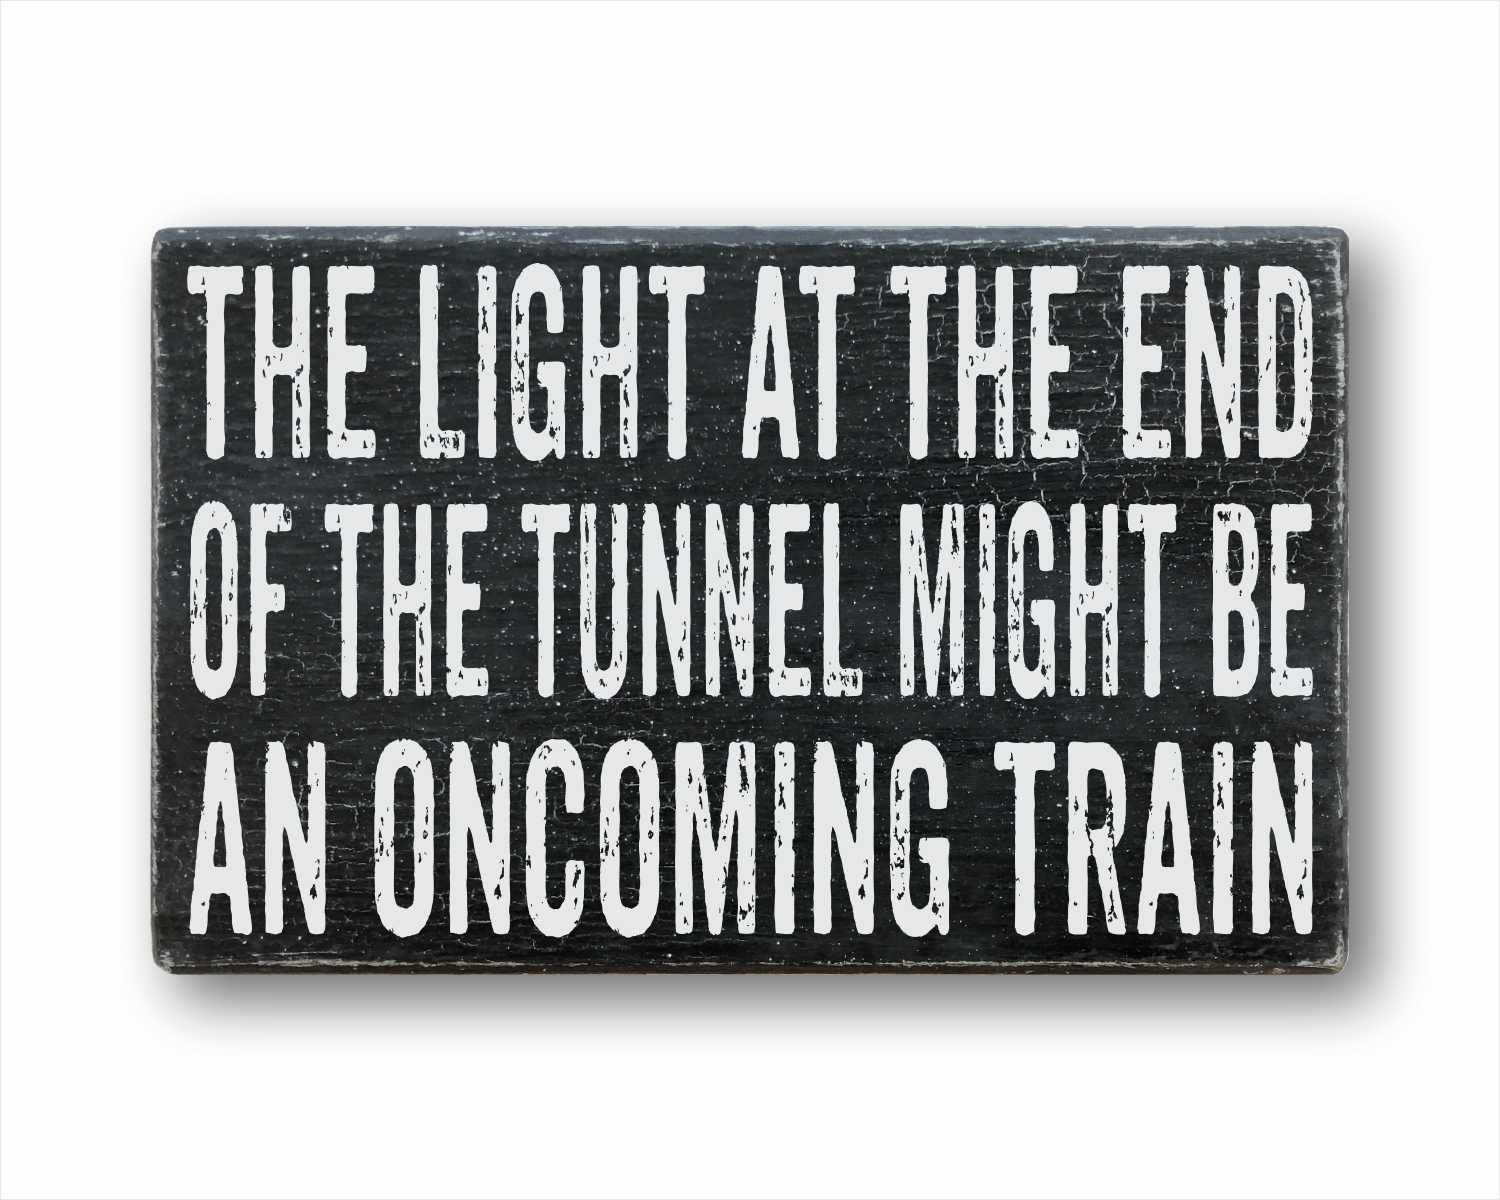 The Light at the End of the Tunnel Might be an Oncoming Train: Rustic Rectangular Wood Sign